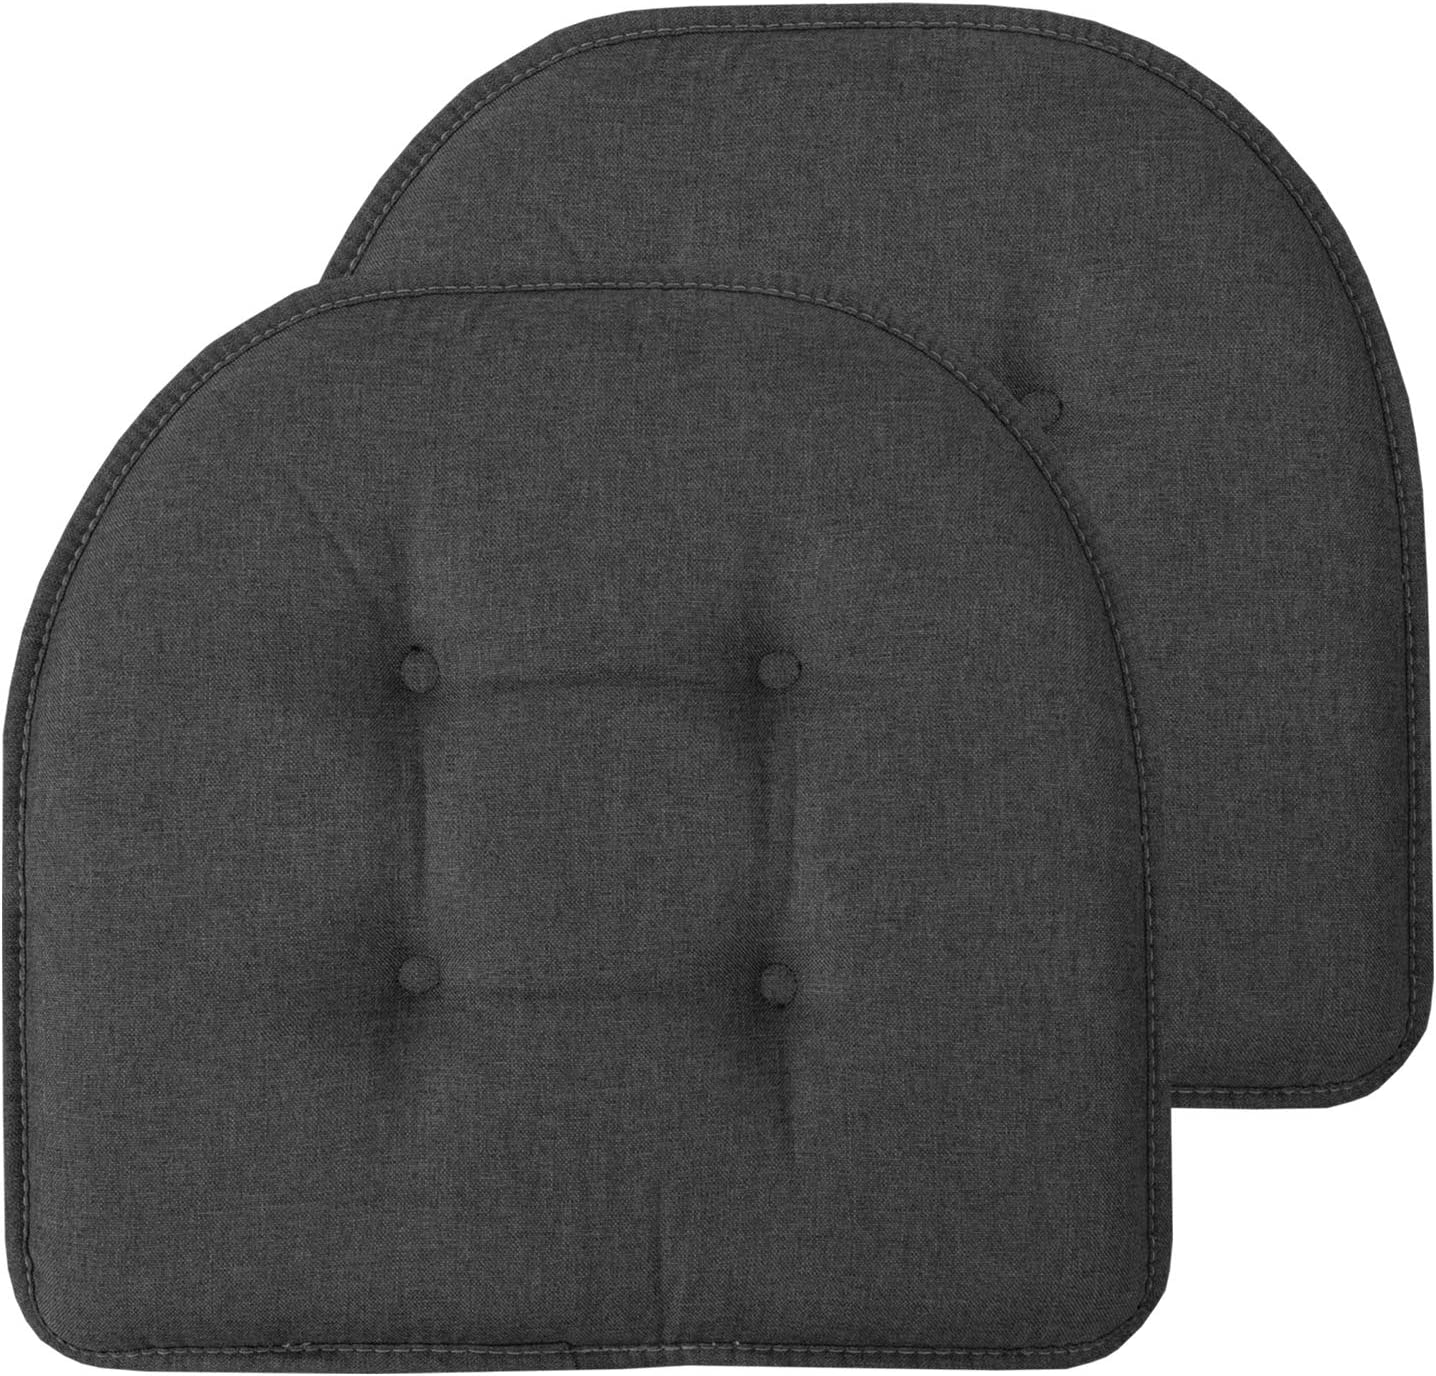 Grey Sweet Home Collection Chair Cushion Memory Foam Pads Tufted Slip Non Skid Rubber Back U-Shaped 17 x 16 Seat Cover 4 Pack